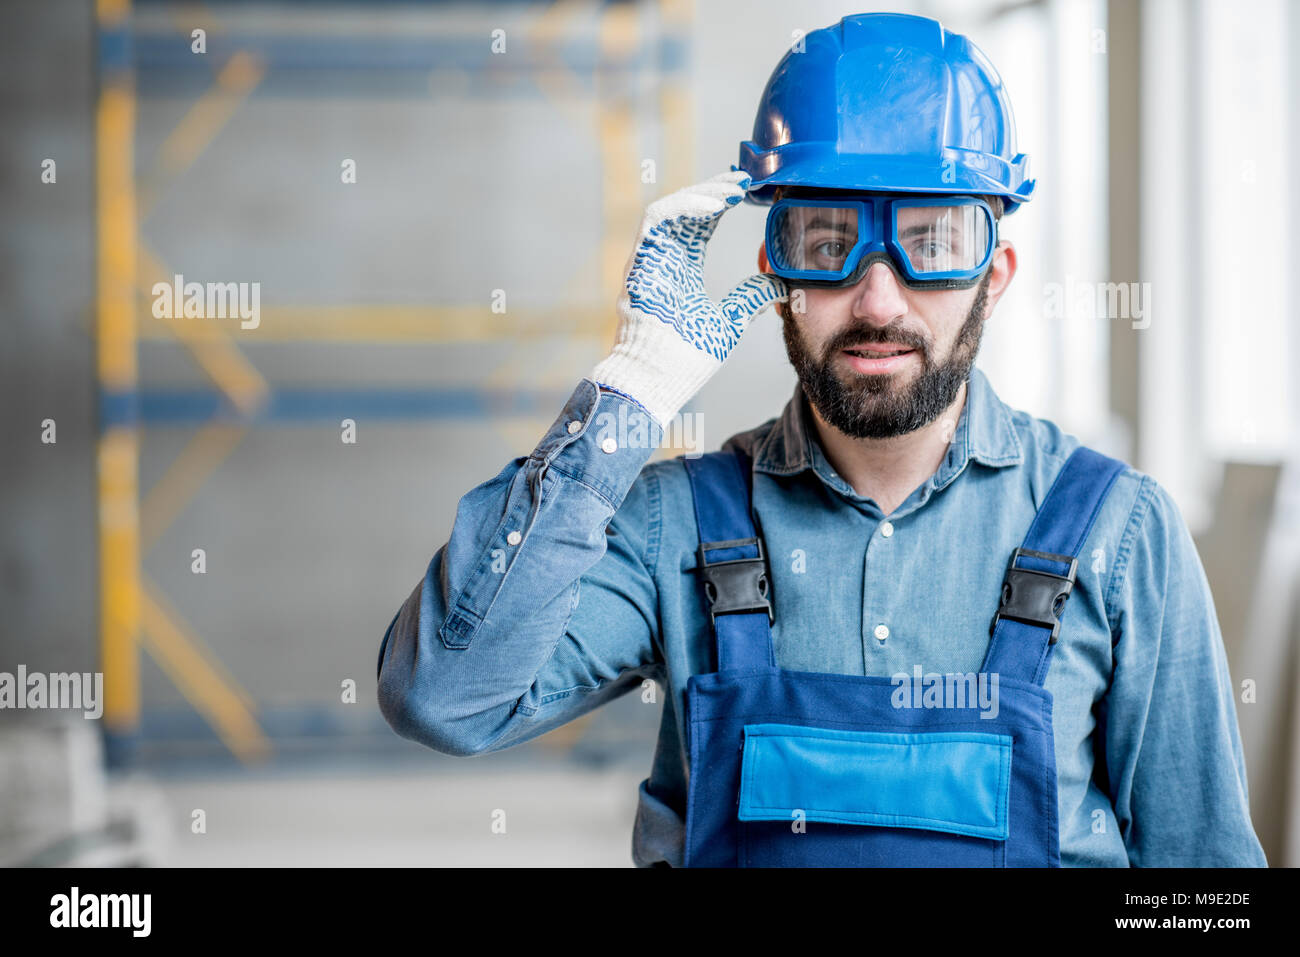 Builder in uniform indoors Stock Photo